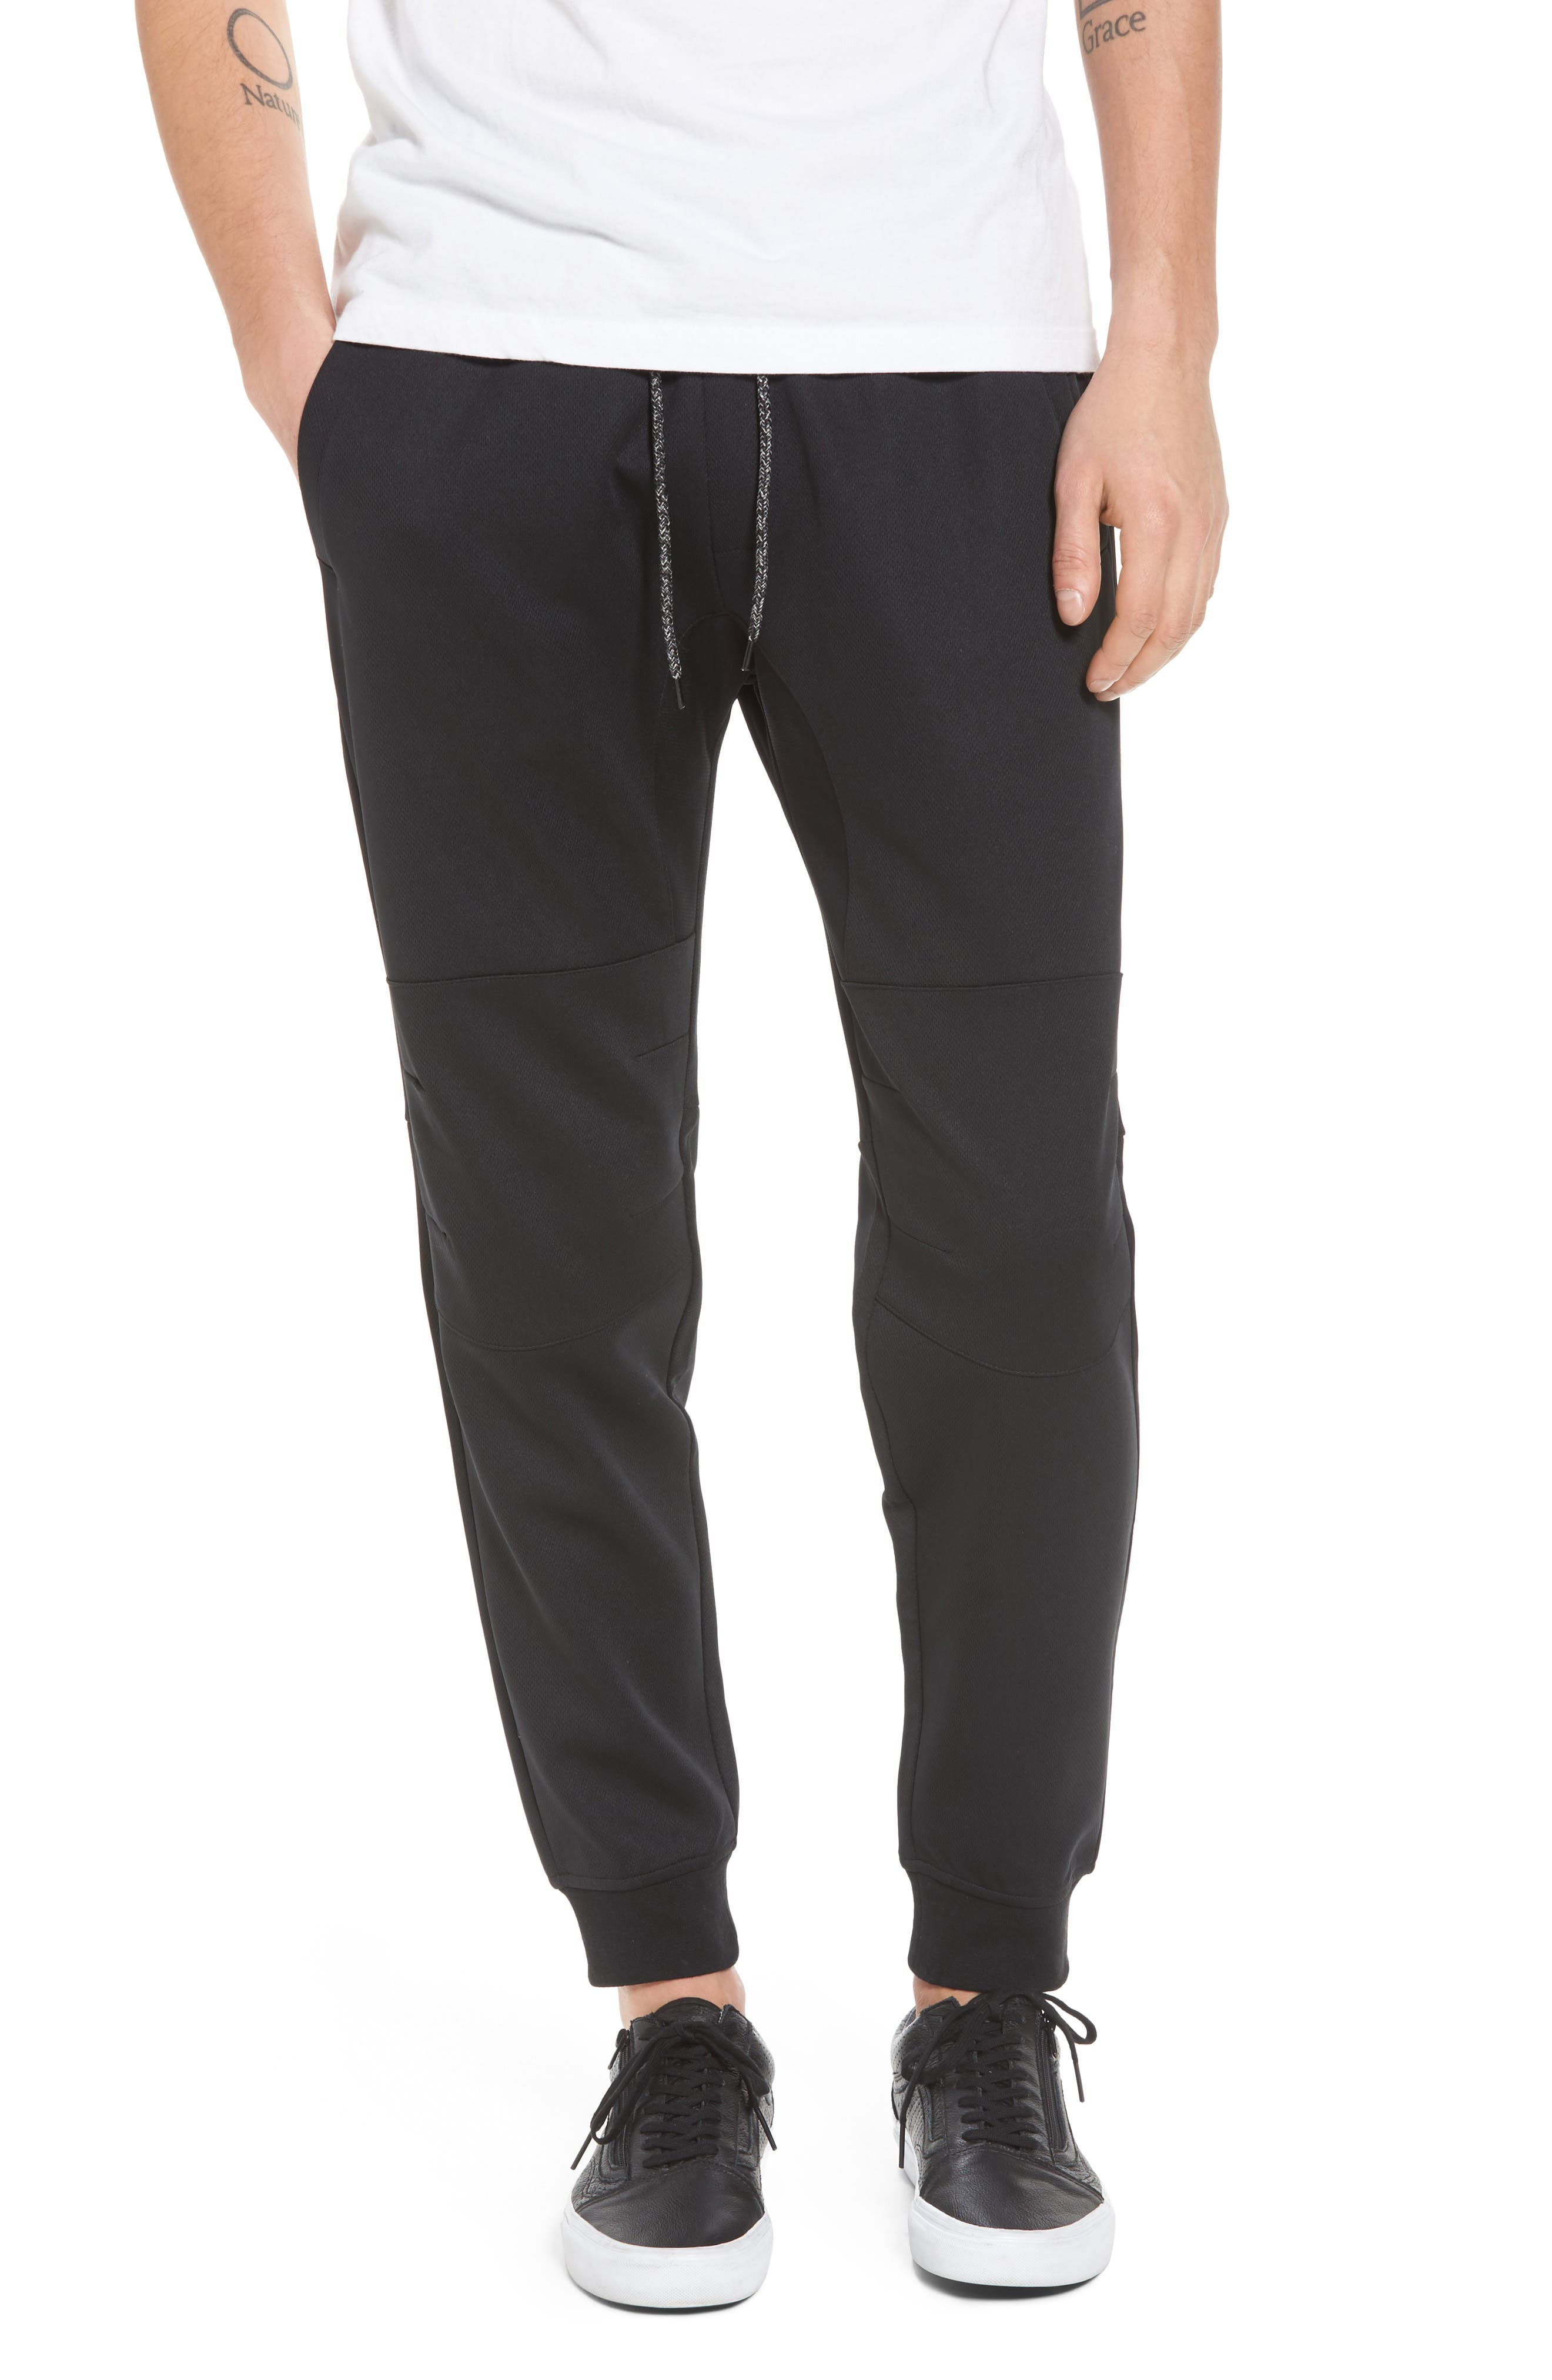 Main Image - The Rail Mesh Jogger Pants